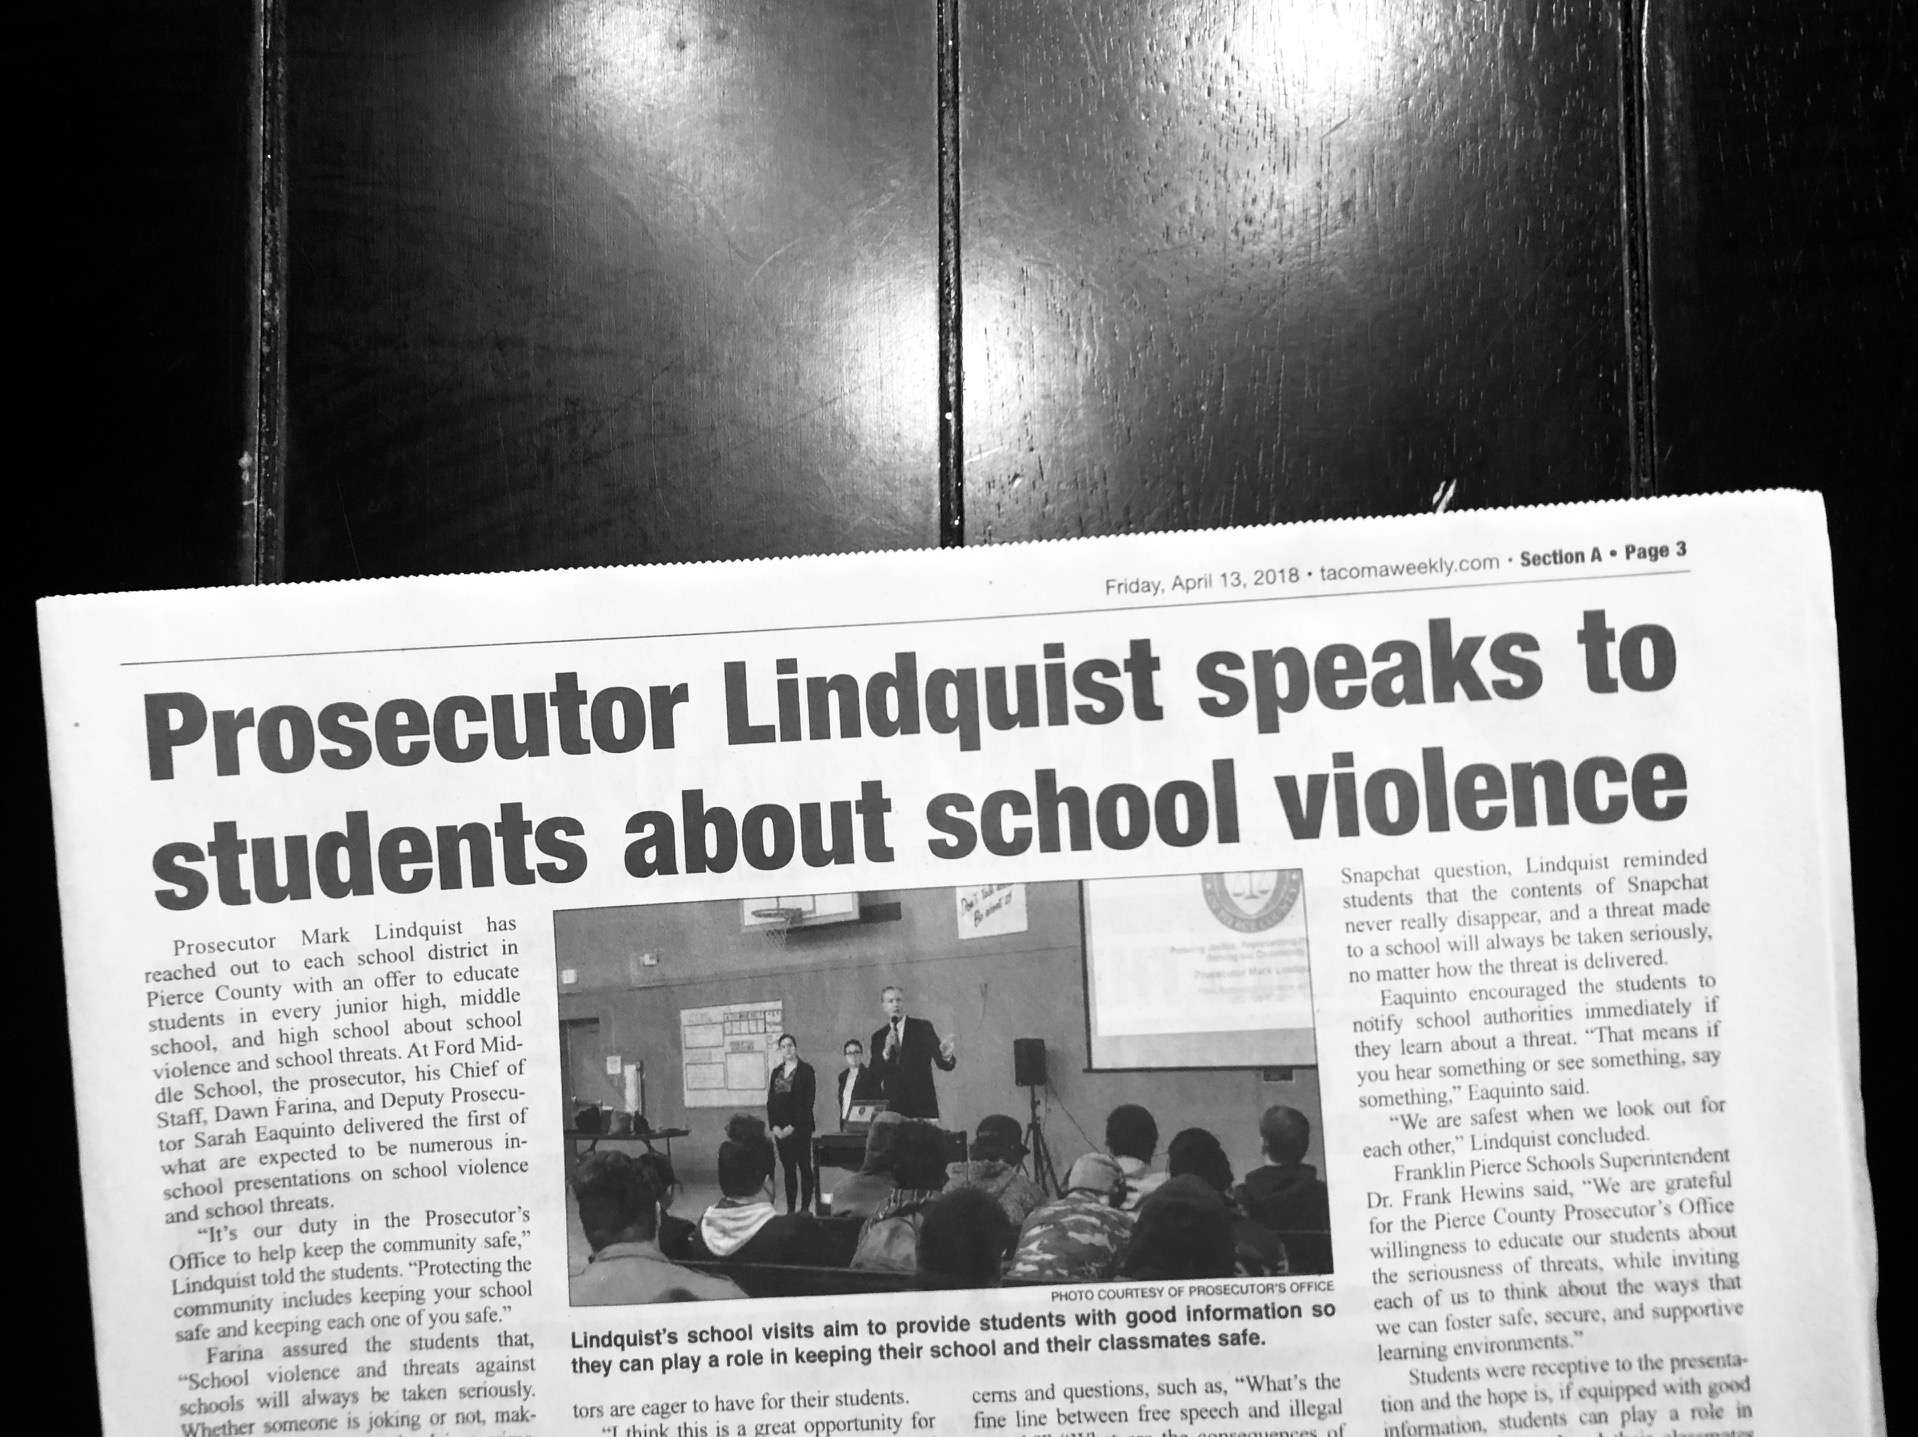 Keep Our Prosecutor Mark Lindquist and Keep Our Schools Safe